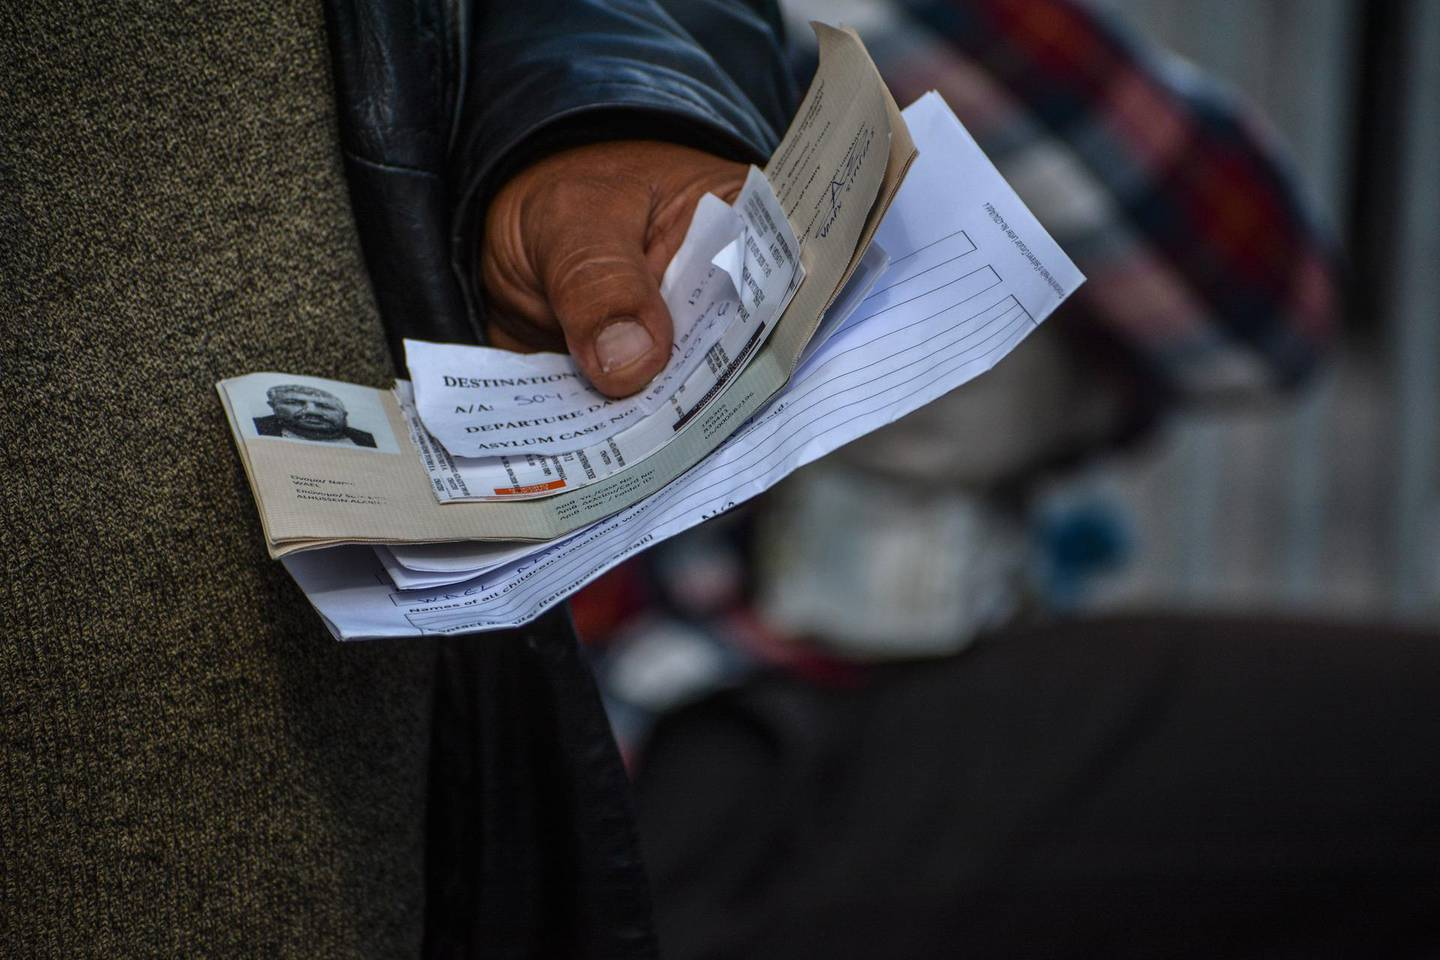 A migrant holds travel documents as he waits to go onboard a ship bound for Piraeus at the port of Mytilene, on the northeastern Aegean island of Lesbos, Greece, on Sunday, May 3, 2020. Greek authorities are moving 400 migrants, mostly families, to the mainland to help ease overcrowded conditions at the camp. The migrants will arrive in the port of Piraeus on two passenger ships Monday morning. (AP Photo/Panagiotis Balaskas)